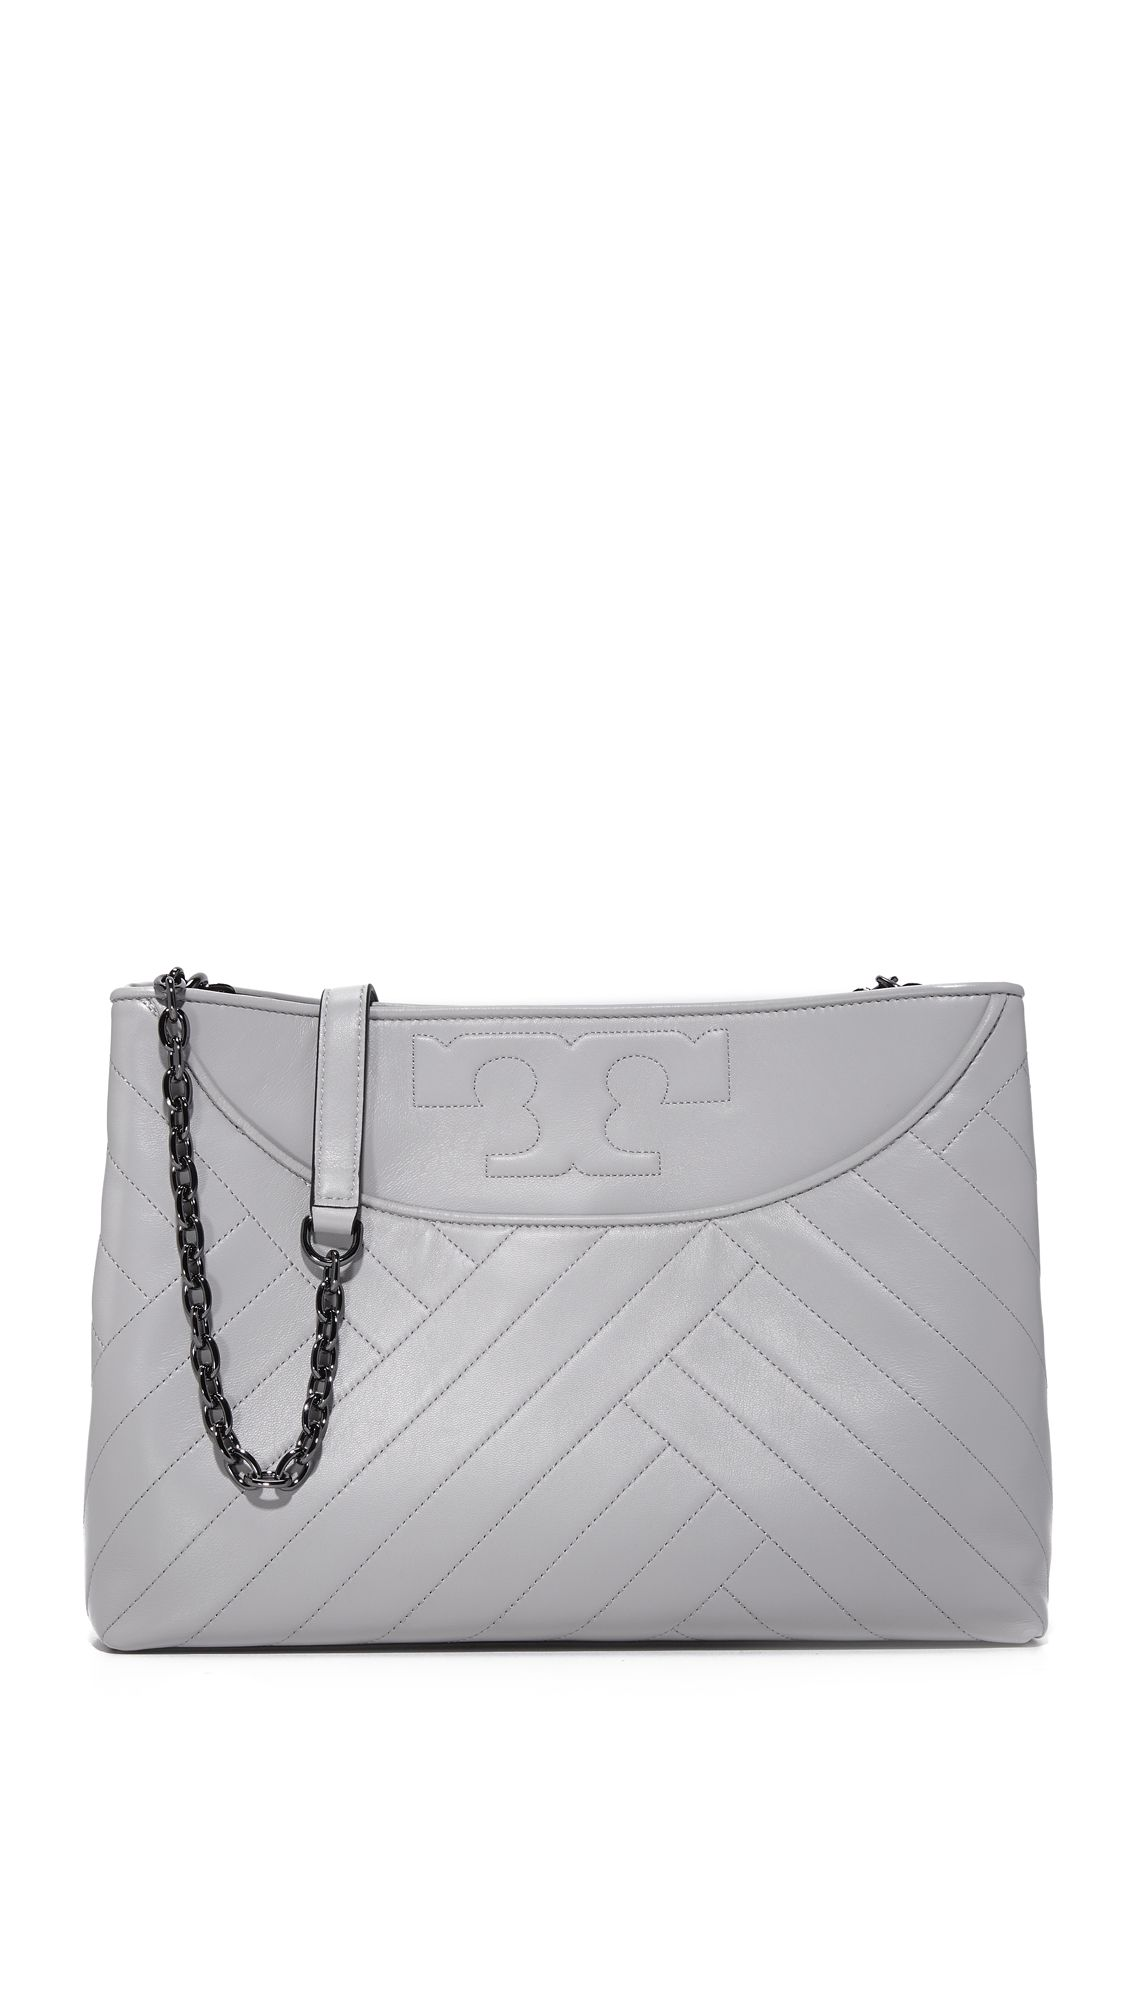 cebd147bd7de The slouchy Tory Burch Alexa tote has a soft